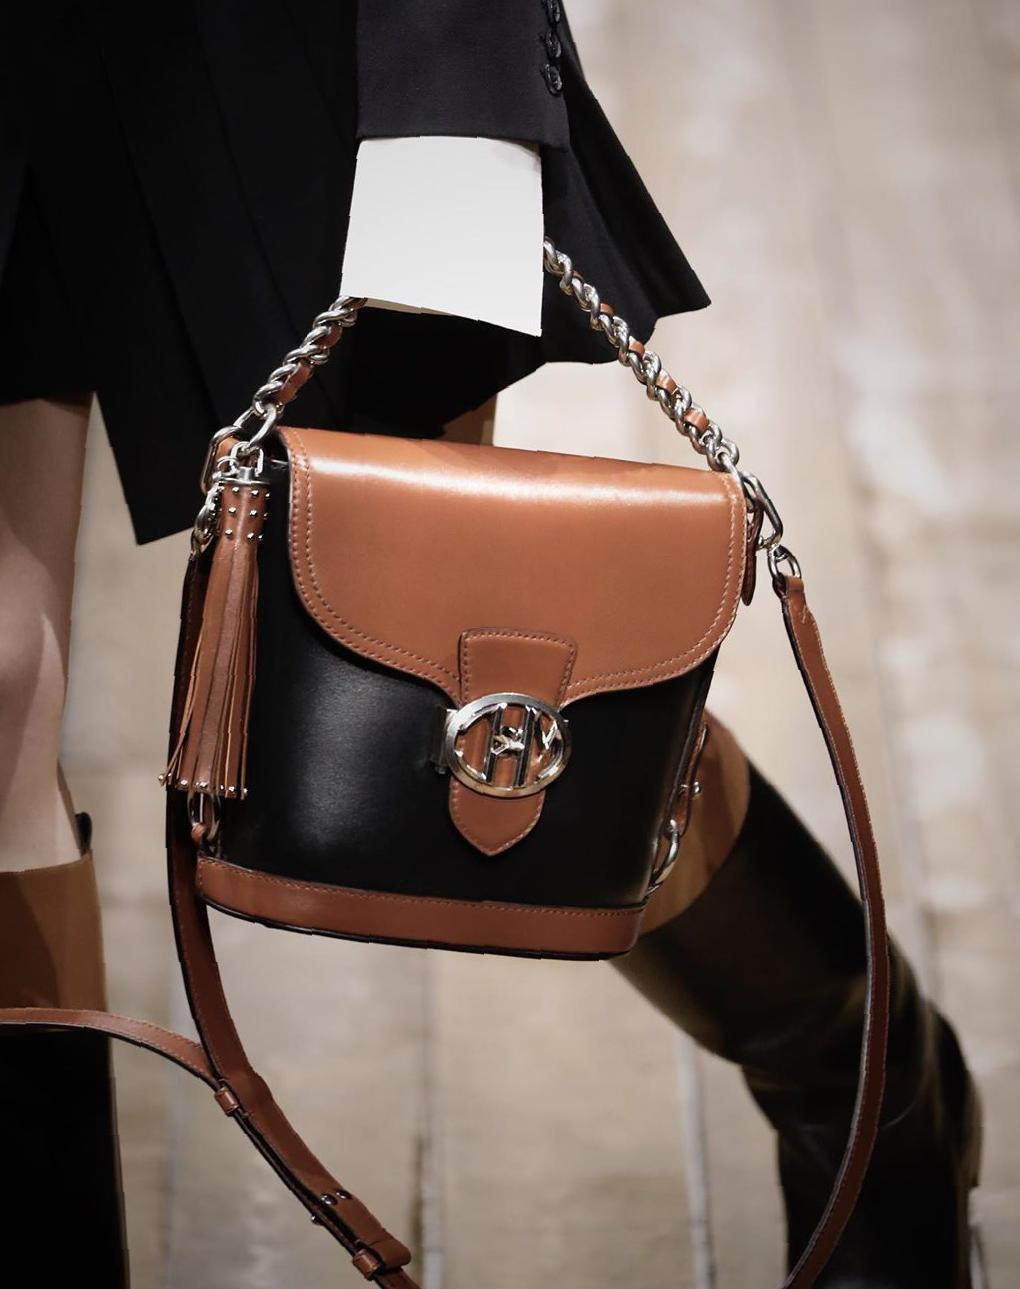 Fashion Handbag Ideas Images for Women - Page 6 of 13 - Girlrs